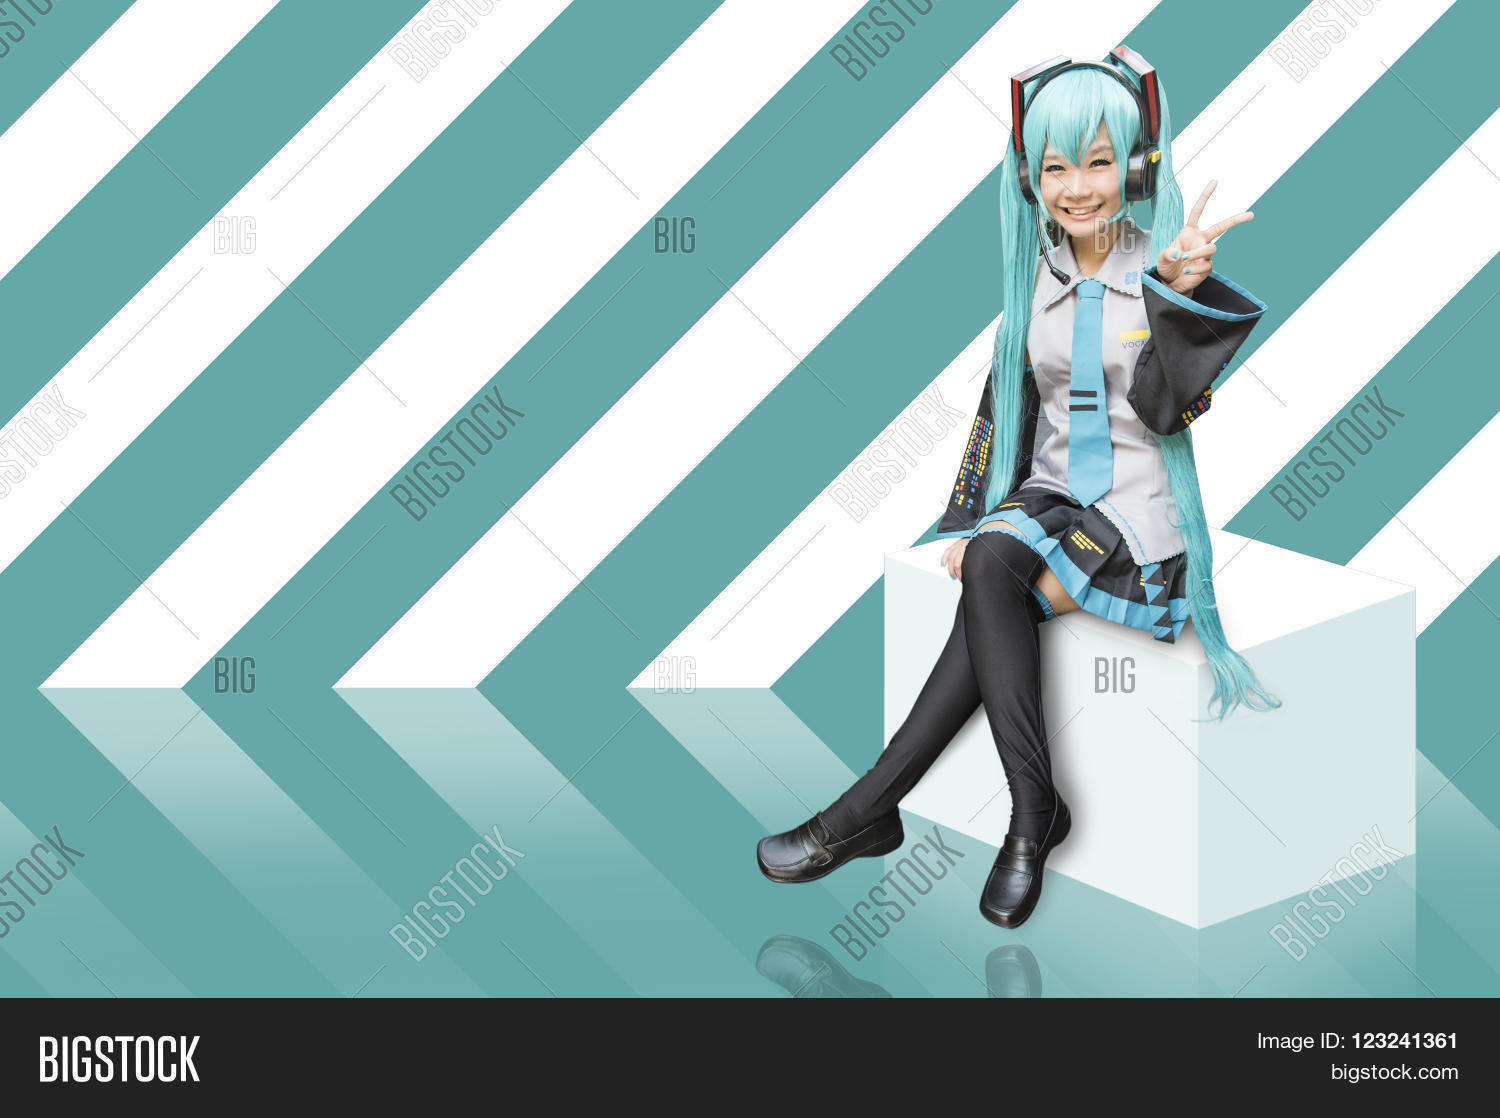 Japan Anime Cosplay Image Photo Free Trial Bigstock